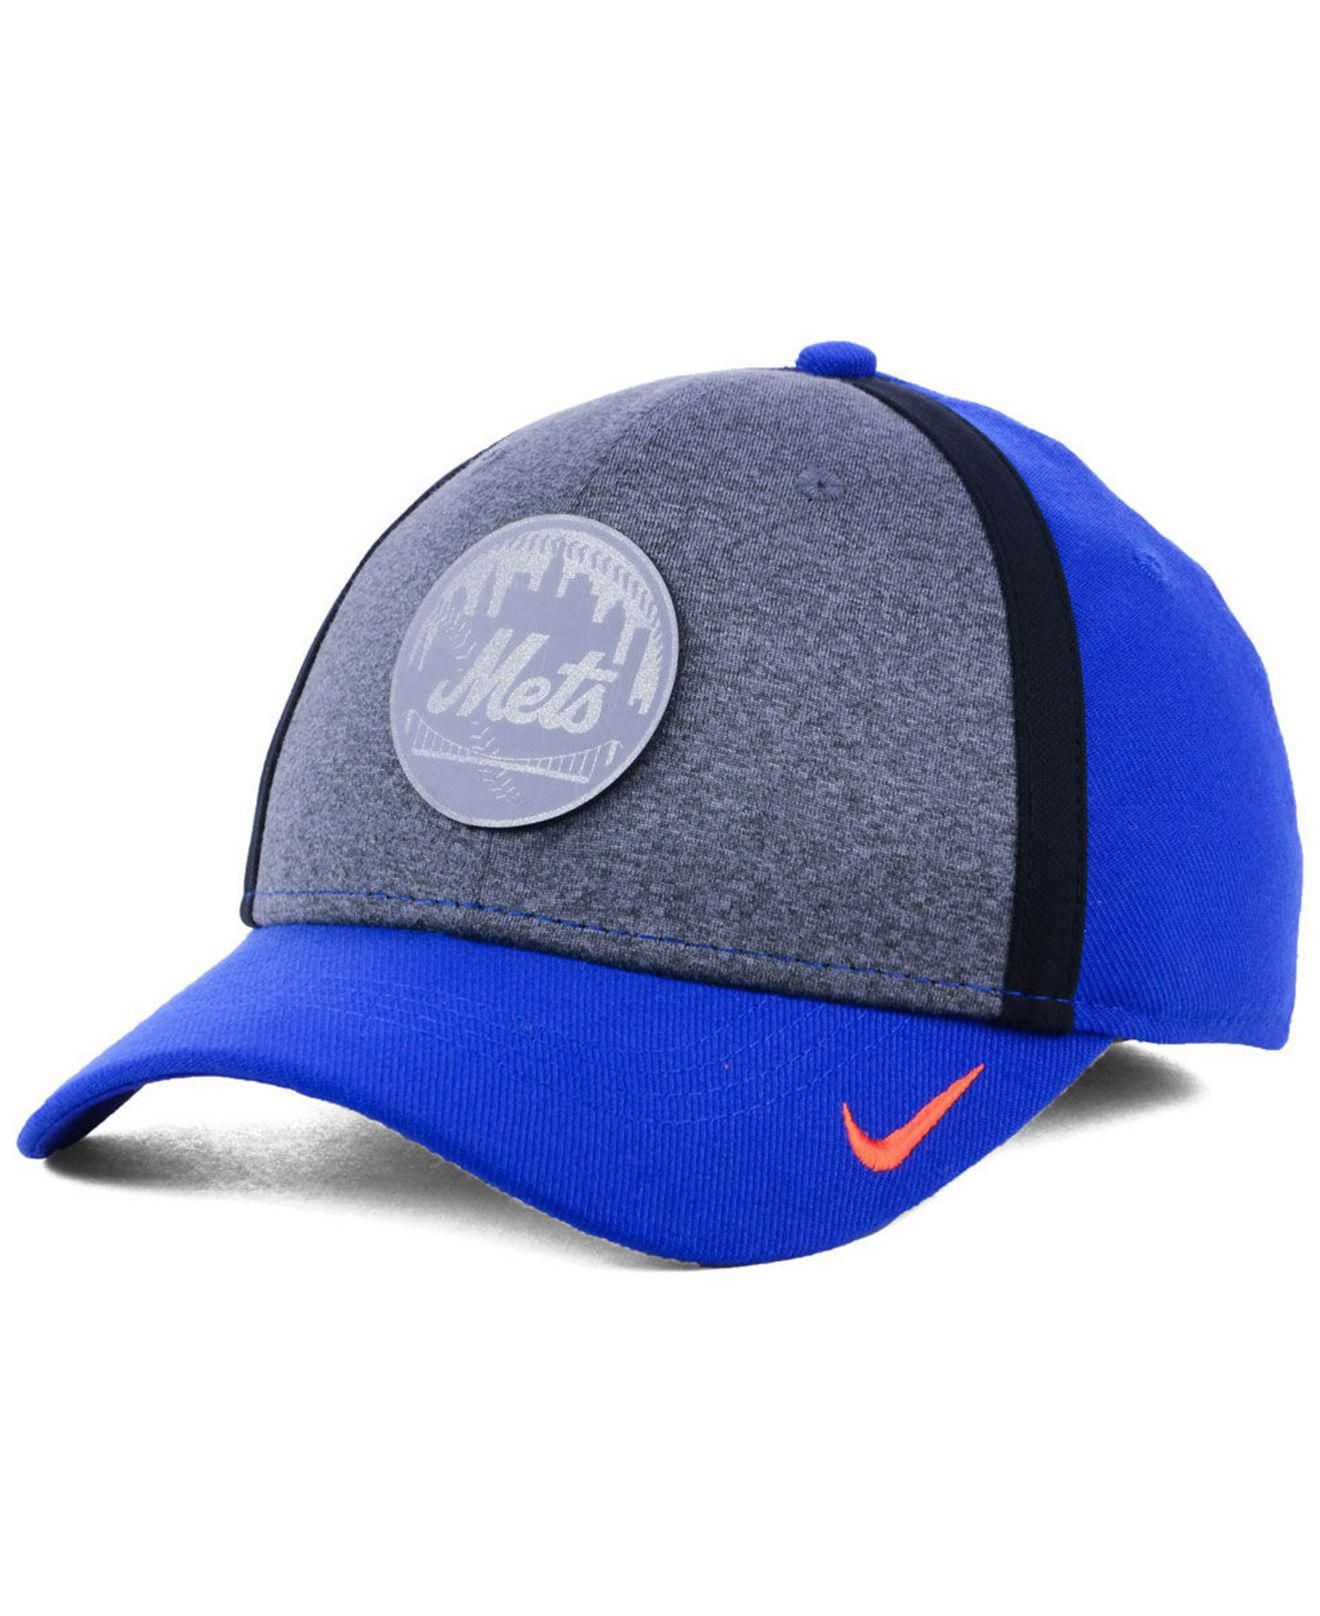 Lyst - Nike New York Mets Team Color Reflective Swooshflex Cap in ... aeb7c58a0e48